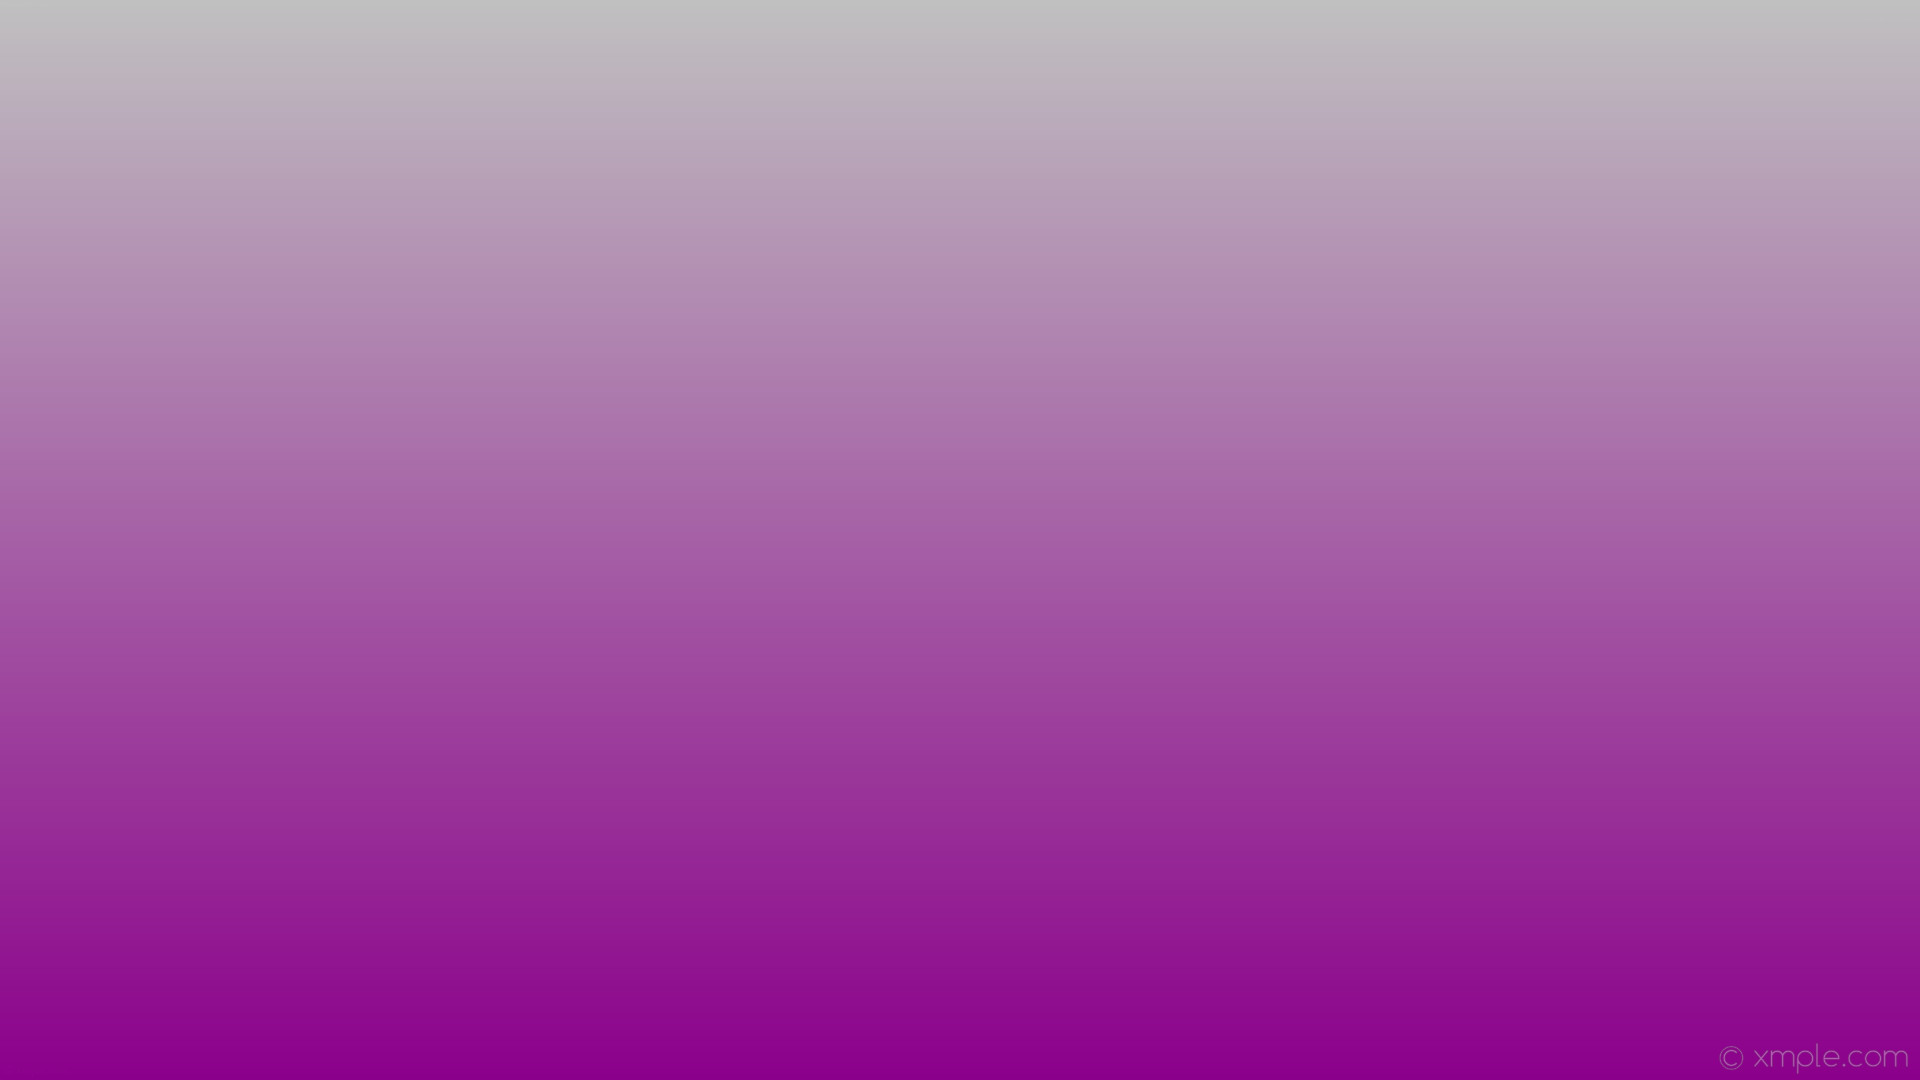 1920x1080 wallpaper gradient purple linear grey dark magenta silver #8b008b #c0c0c0  270°